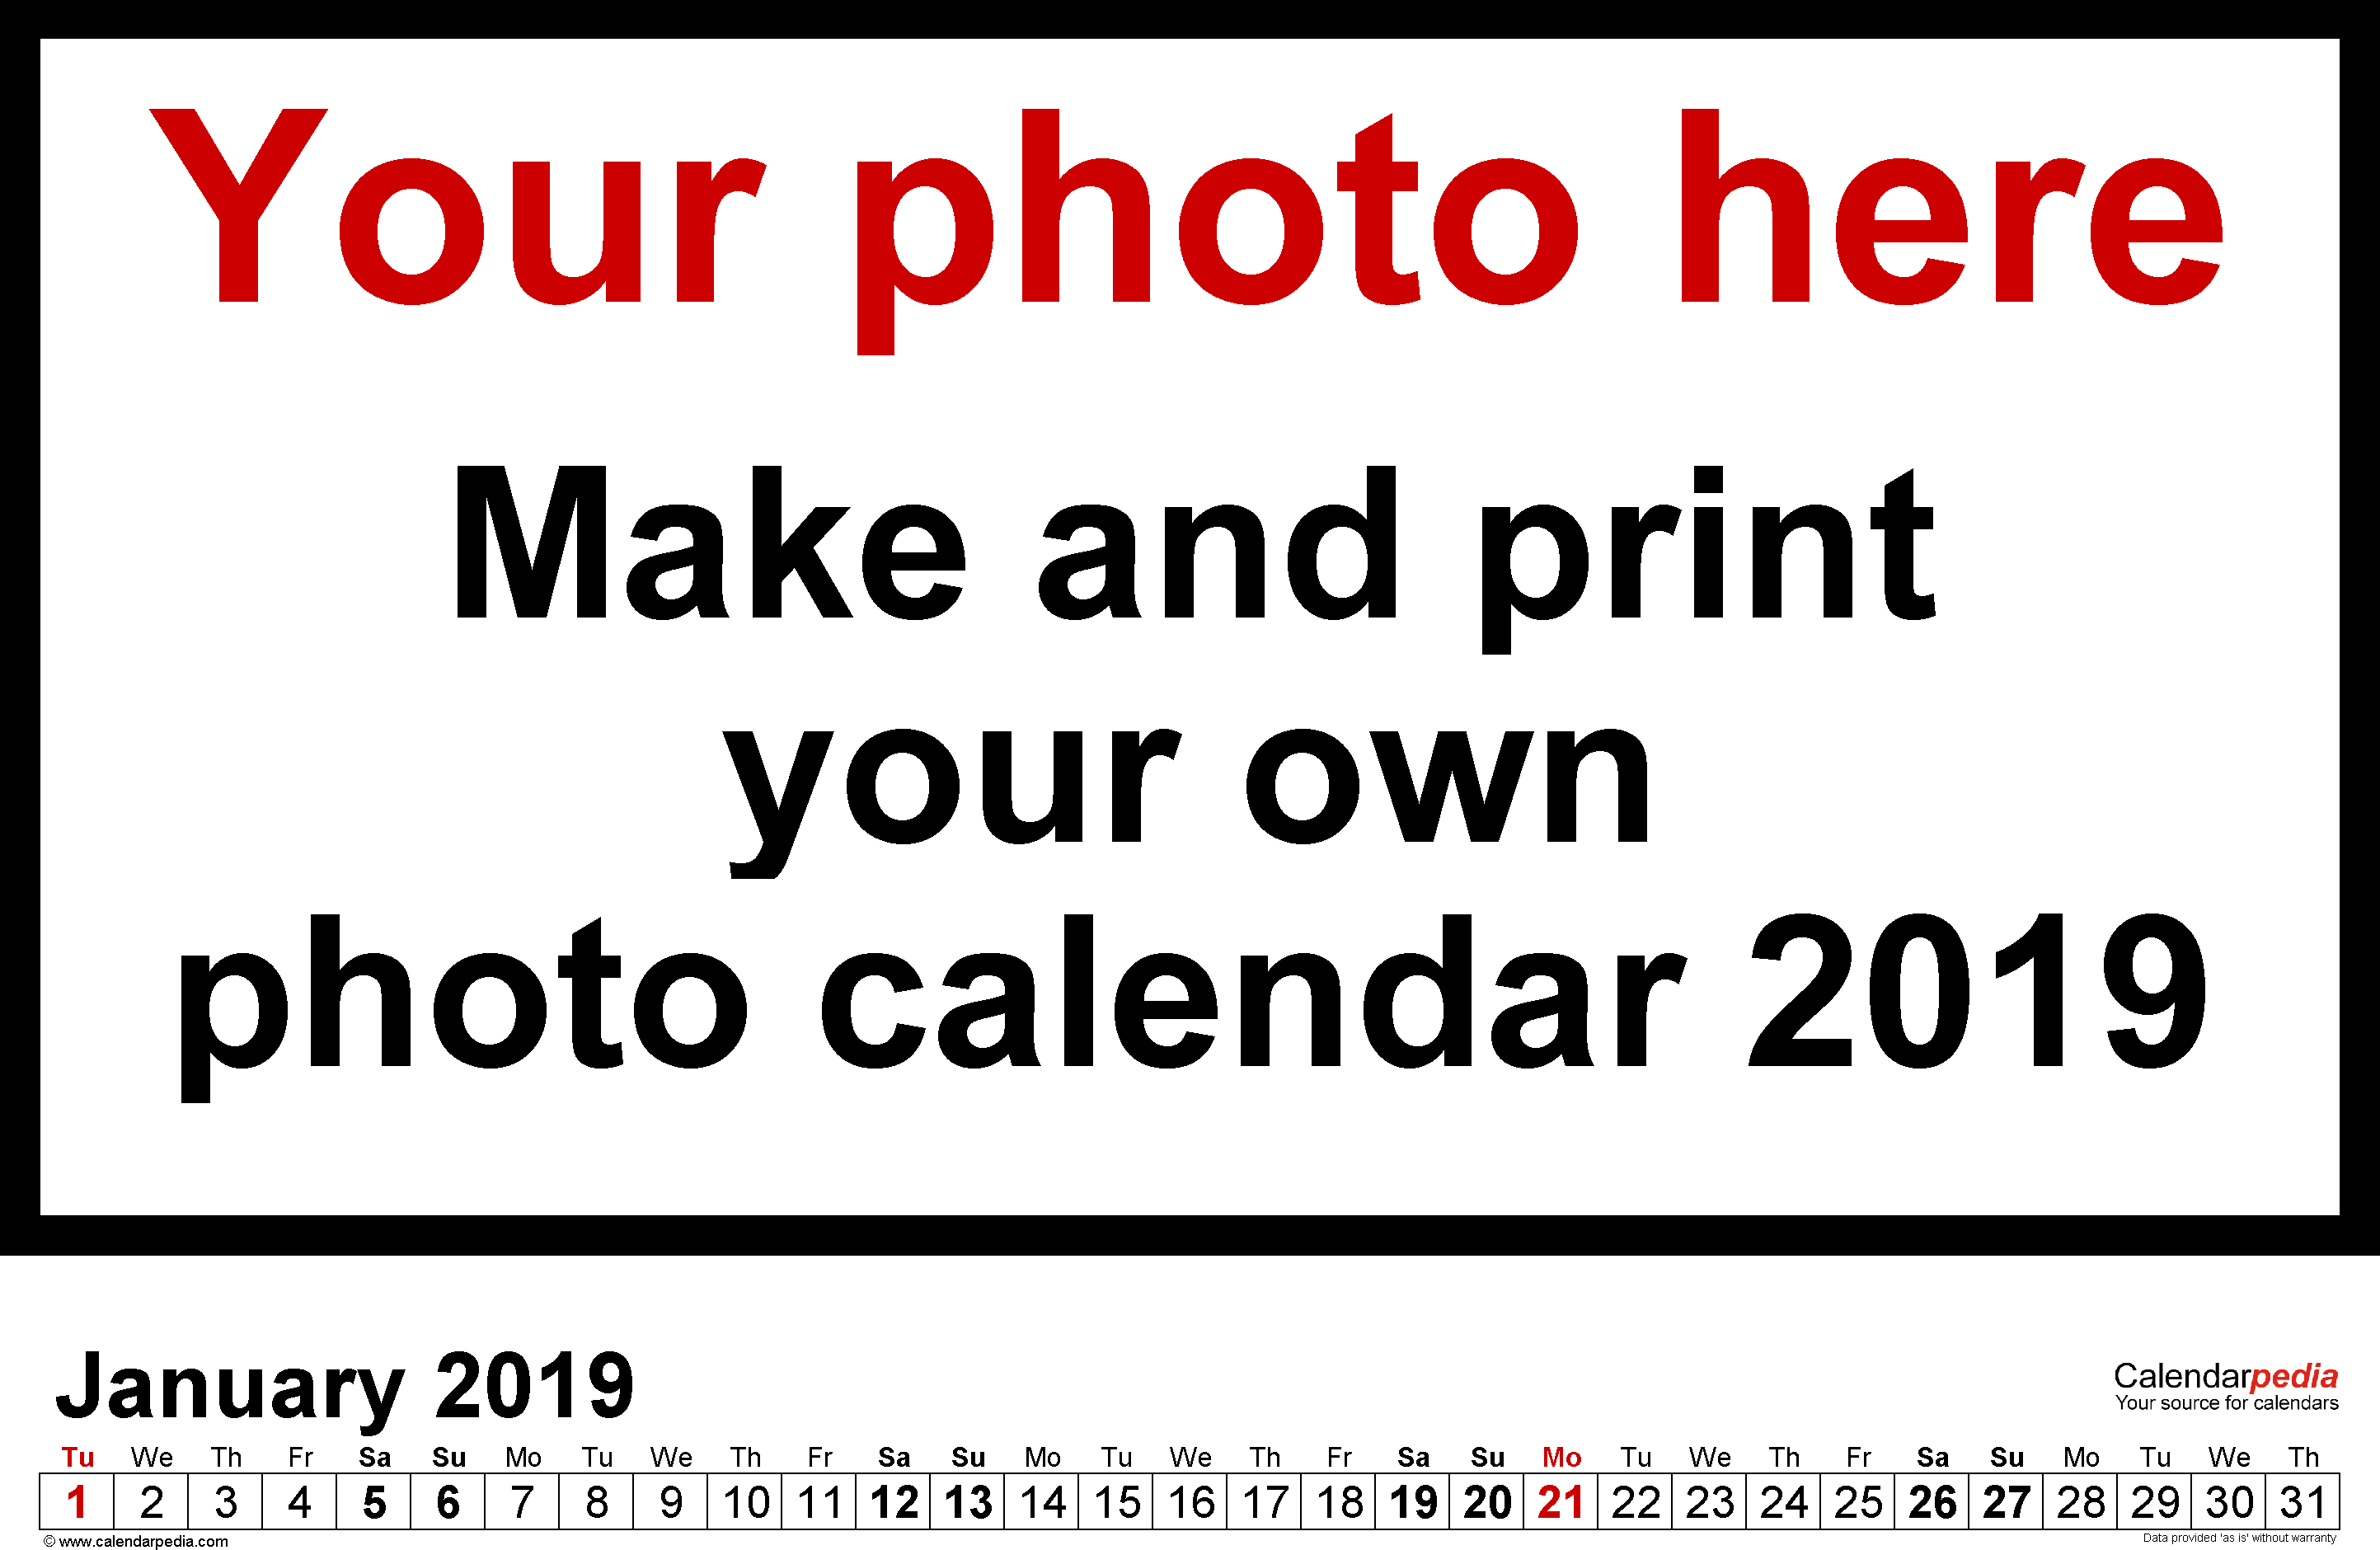 Template 5: Photo calendar 2019 for Word, 12 pages, landscape format